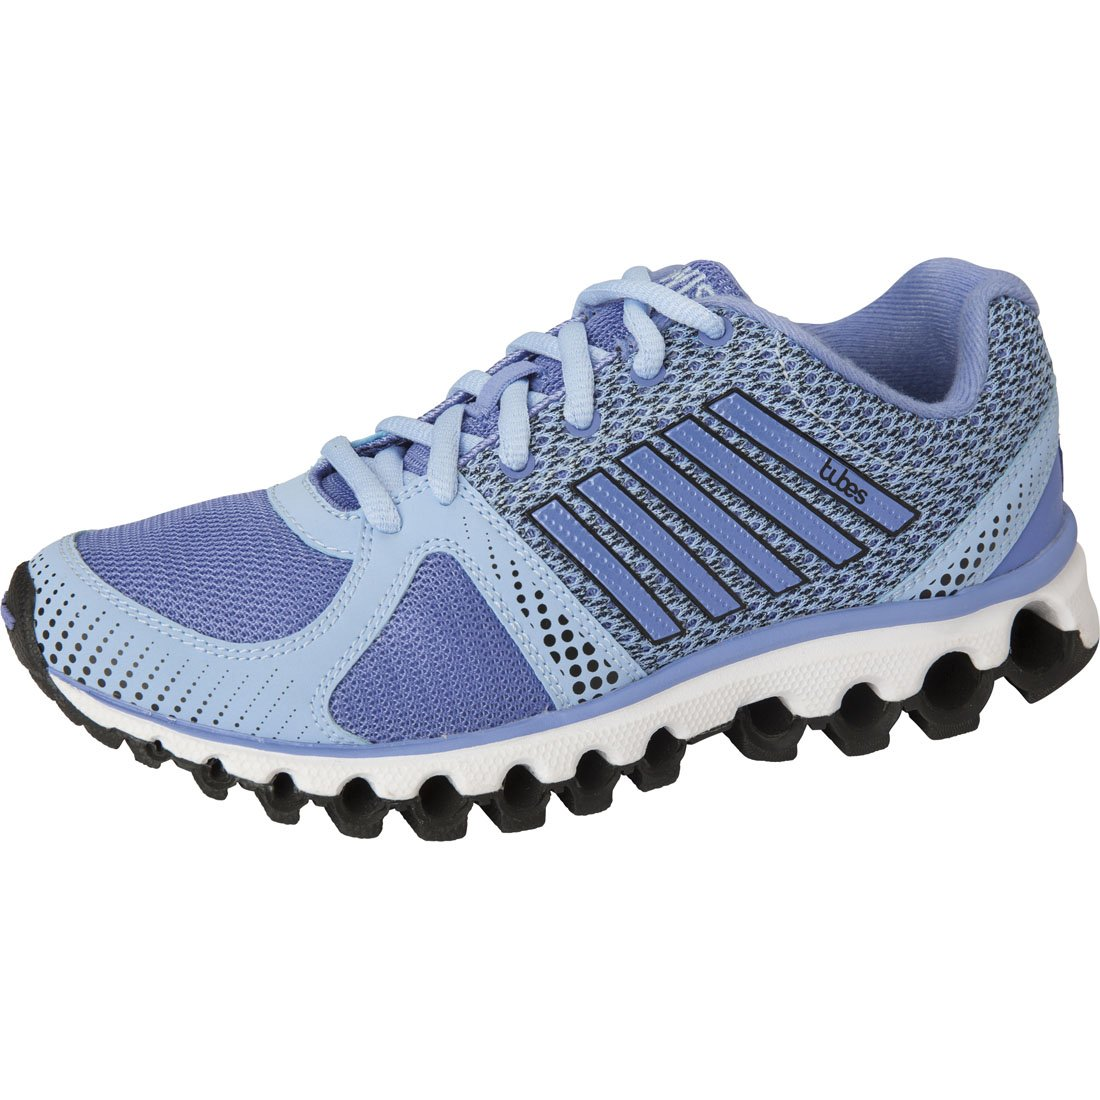 K-Swiss Women's X-160 CMF Training Shoe B01771OPEQ 7 B(M) US|Persian Jewel/White/Black